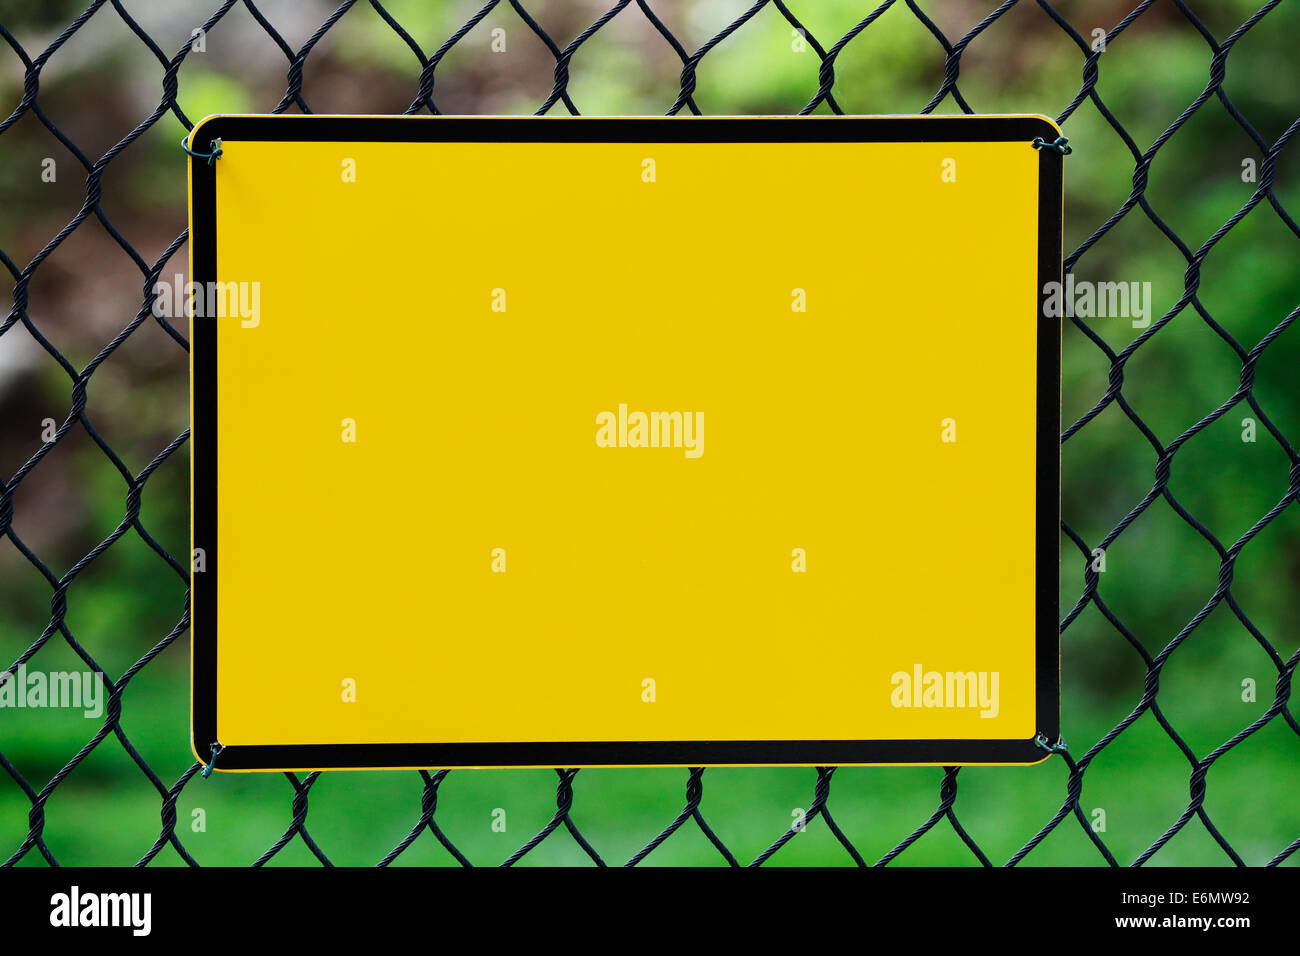 Blank yellow info plate hung on a wire fence - Stock Image